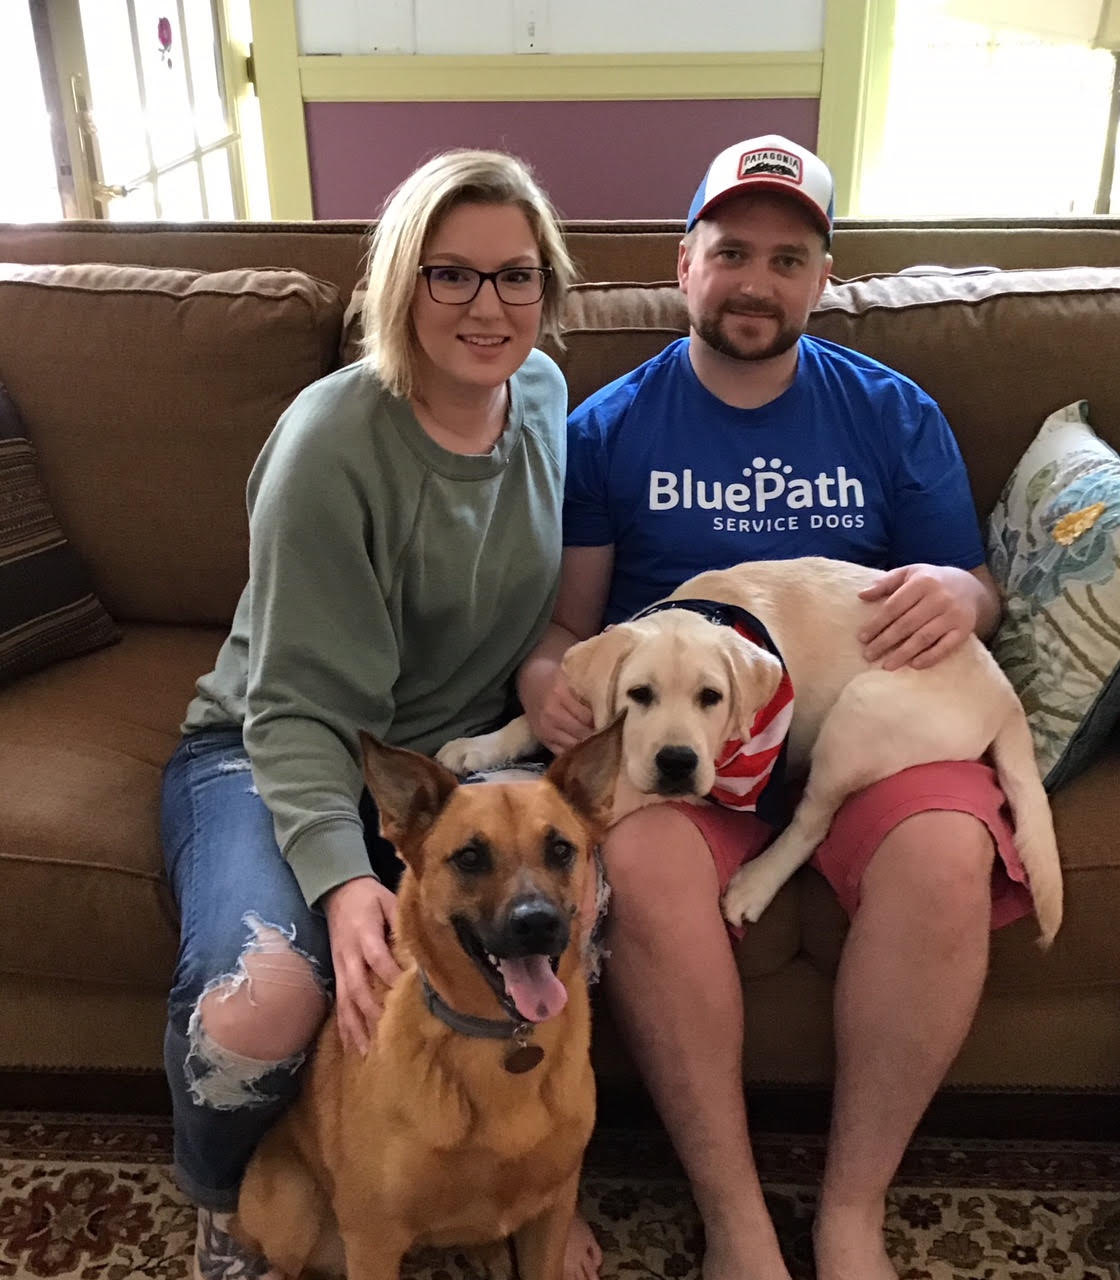 Kaete, Andy and their pet dog, Kota, welcomed BluePath Nicholas into their home with open arms (and laps!).